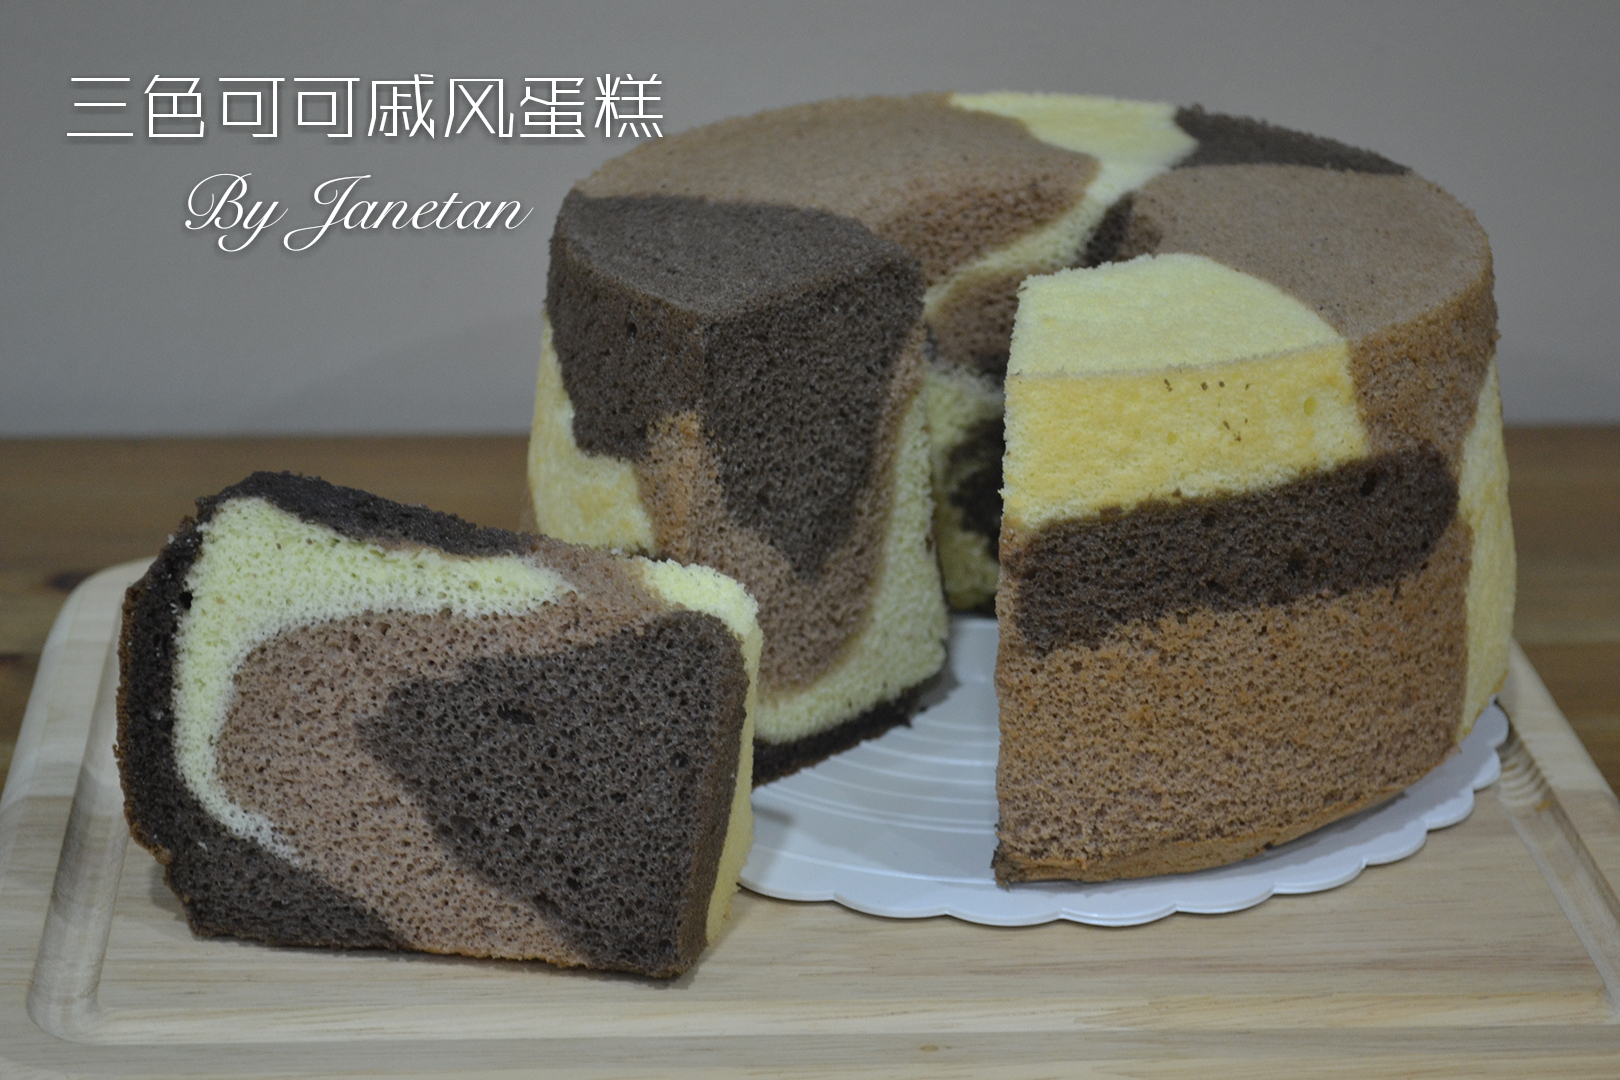 三色可可戚风蛋糕 / Three Colour Cocoa Chiffon Cake